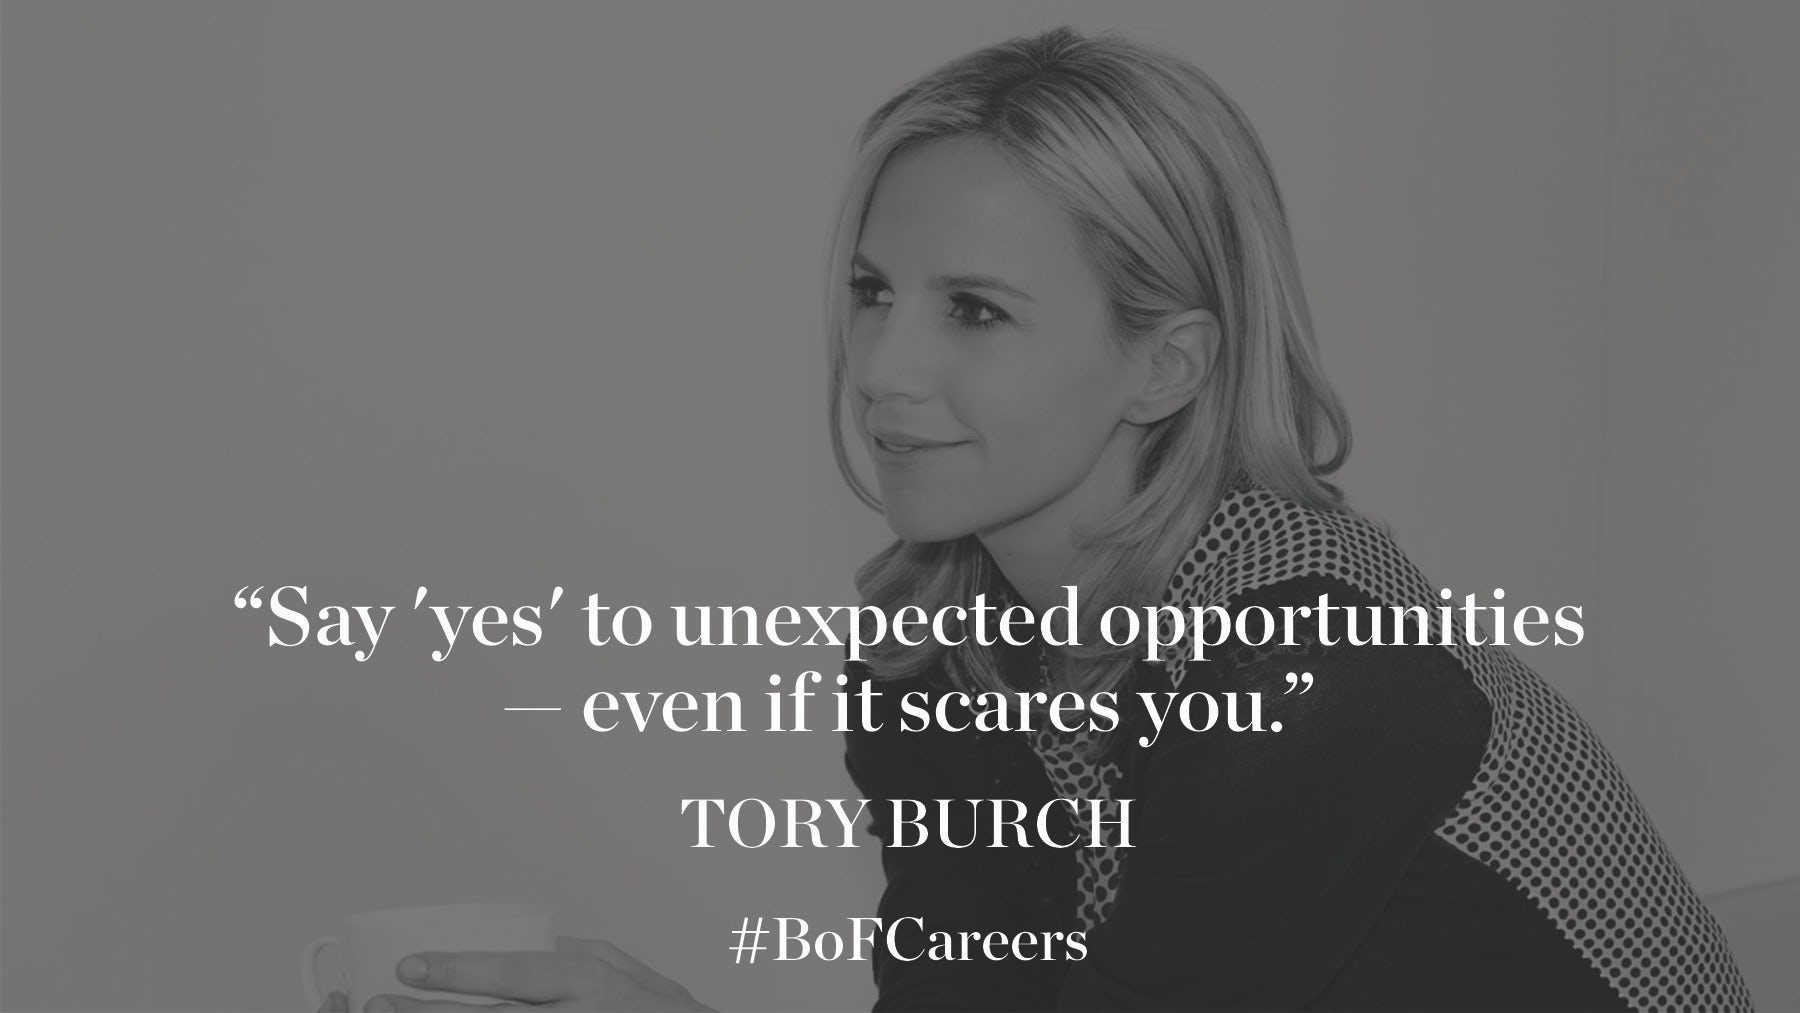 This Week on BoF Careers: BPCM, Allude, Valentina Kova